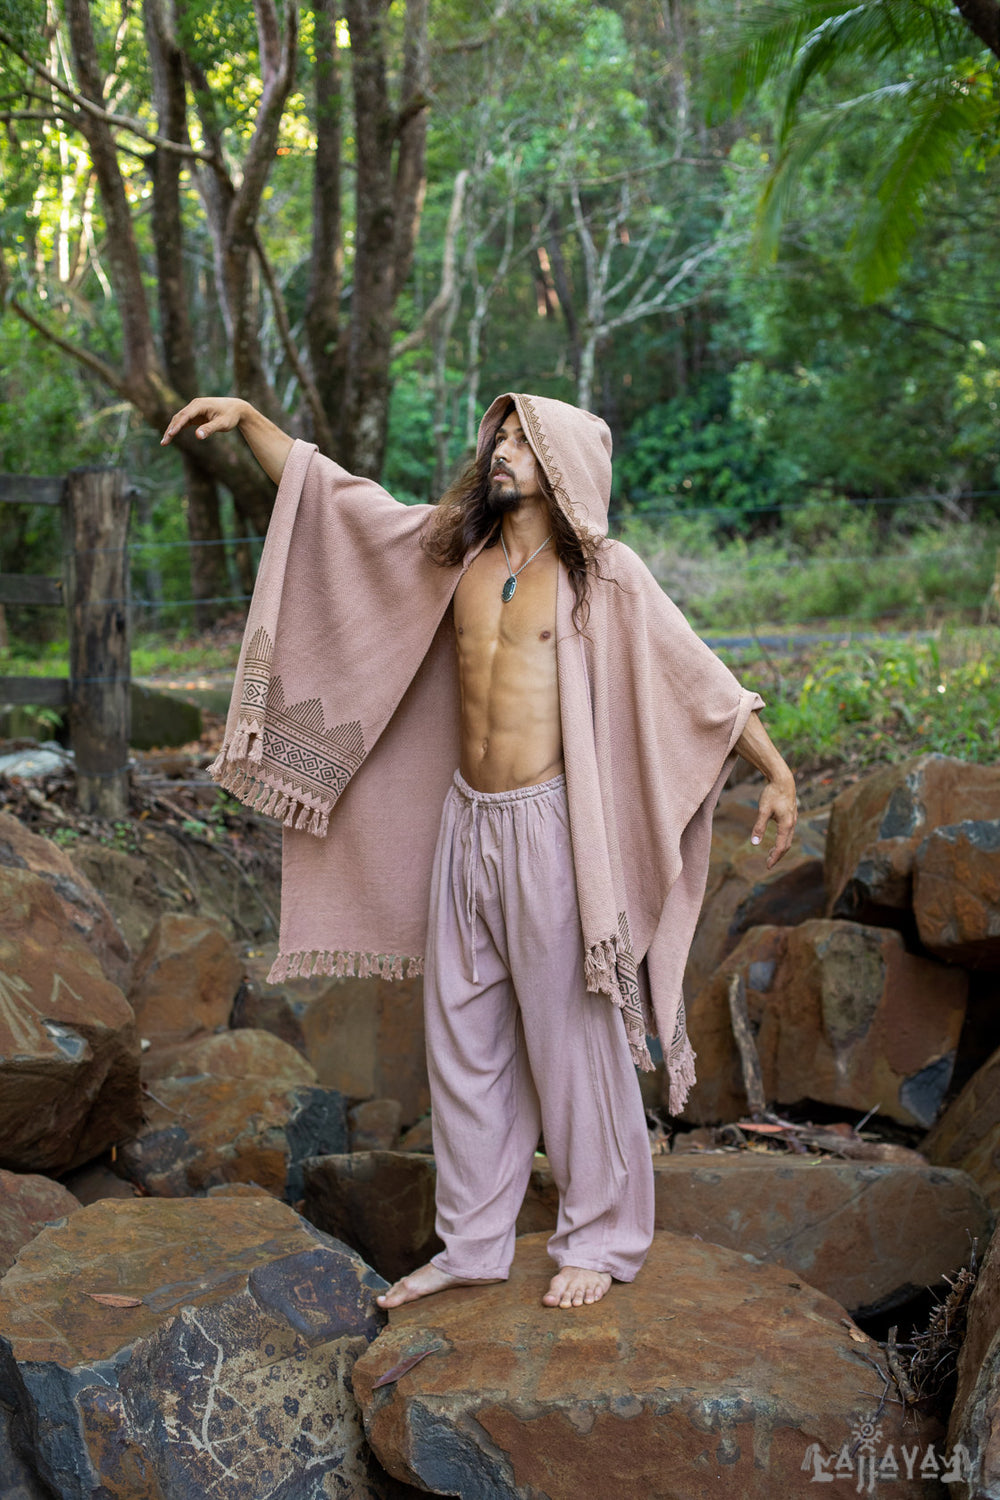 ANAGAMI Salmon Pink Hooded Kimono Cape Poncho Robe Block Printed Natural Dyed Ceremony Ritual Shaman Tribal Alchemy Sacred Shawl AJJAYA